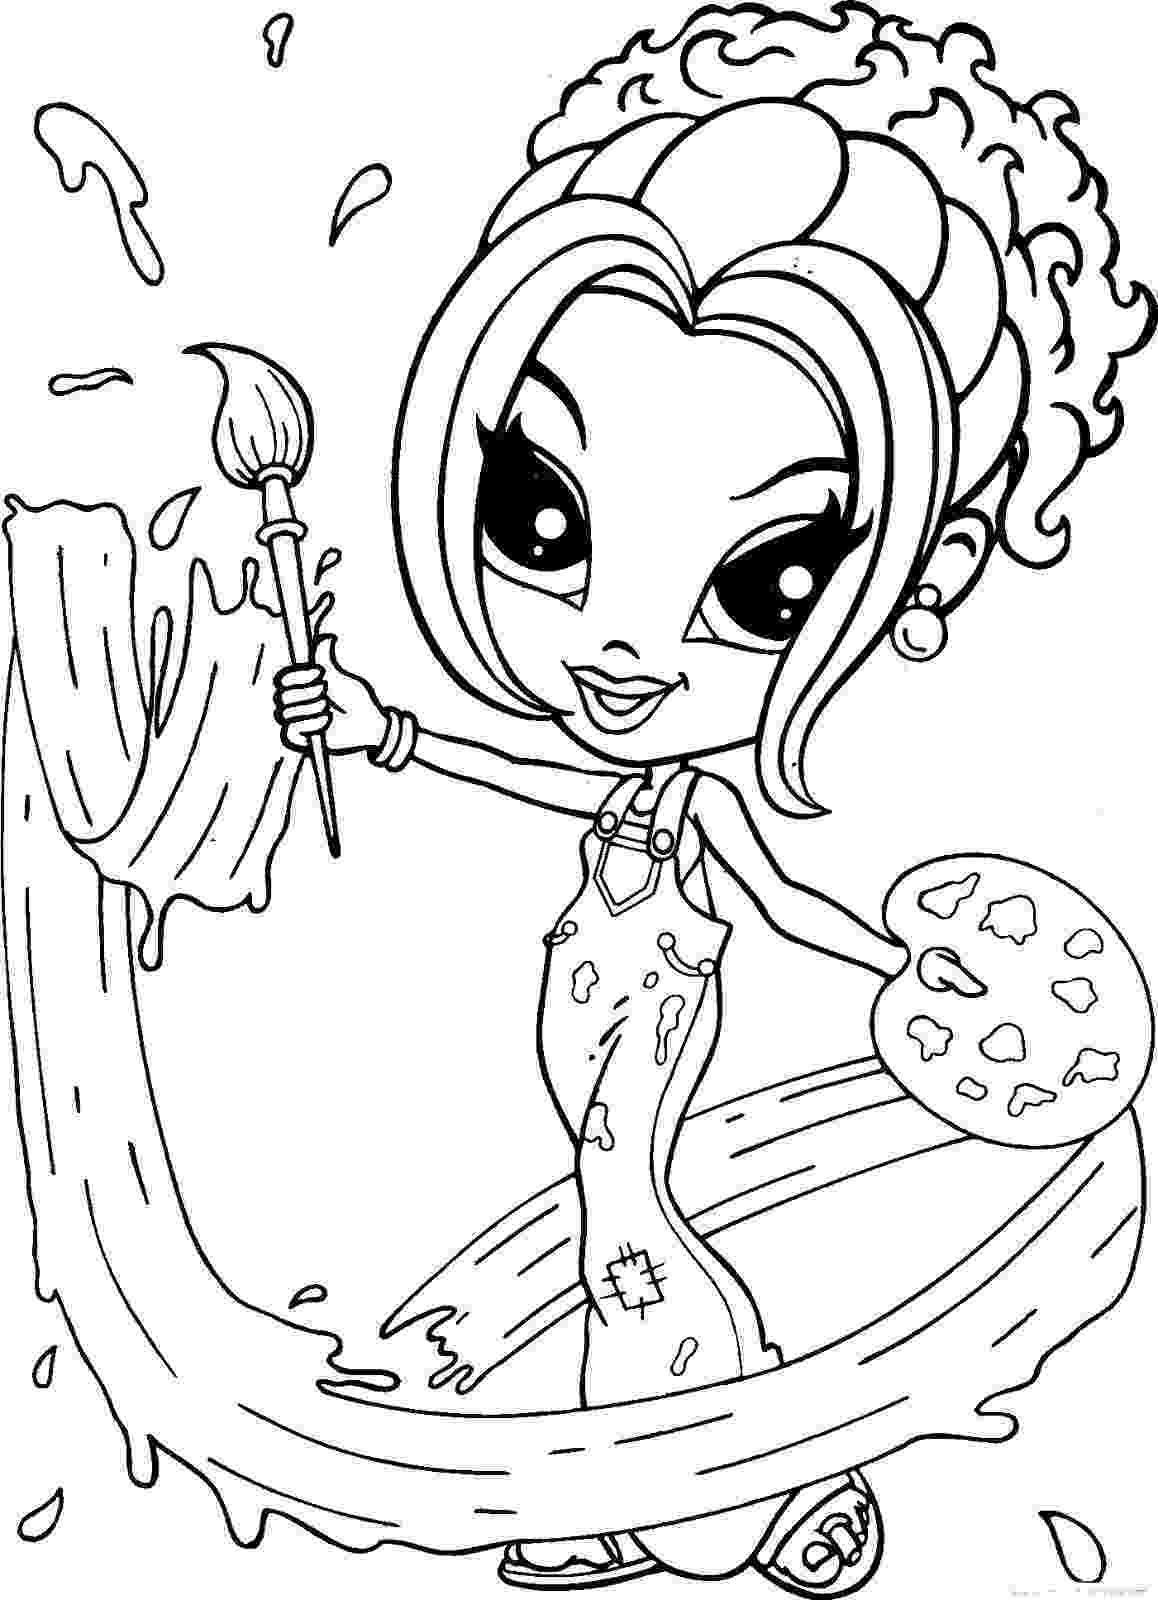 coloring pages printable free printable tree coloring pages for kids cool2bkids pages coloring printable